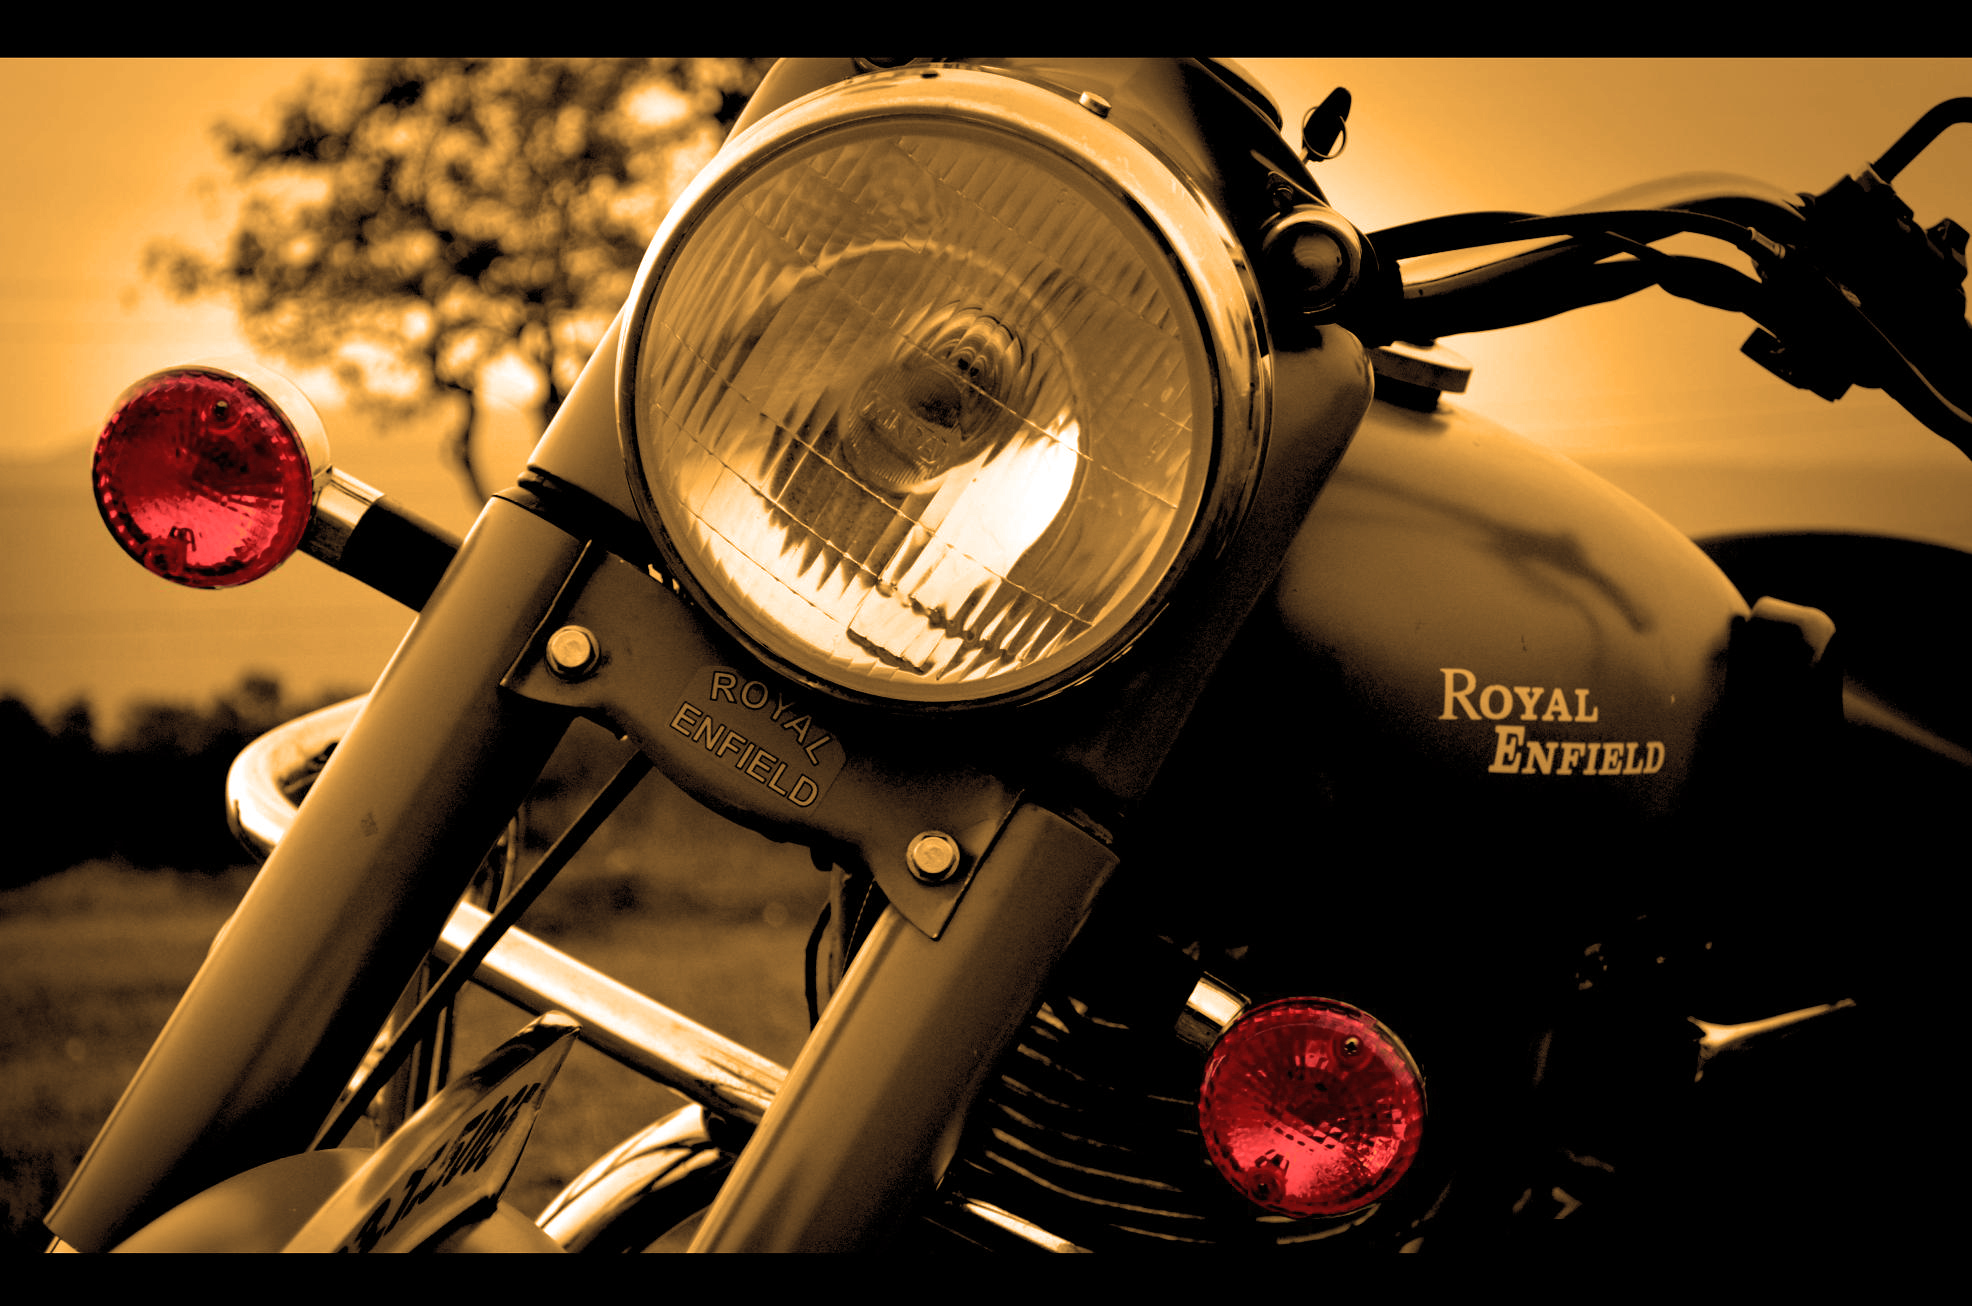 Hd wallpaper royal enfield - Hd Wallpaper Collections High Definition True Quality Hd Desktop Wallpapers